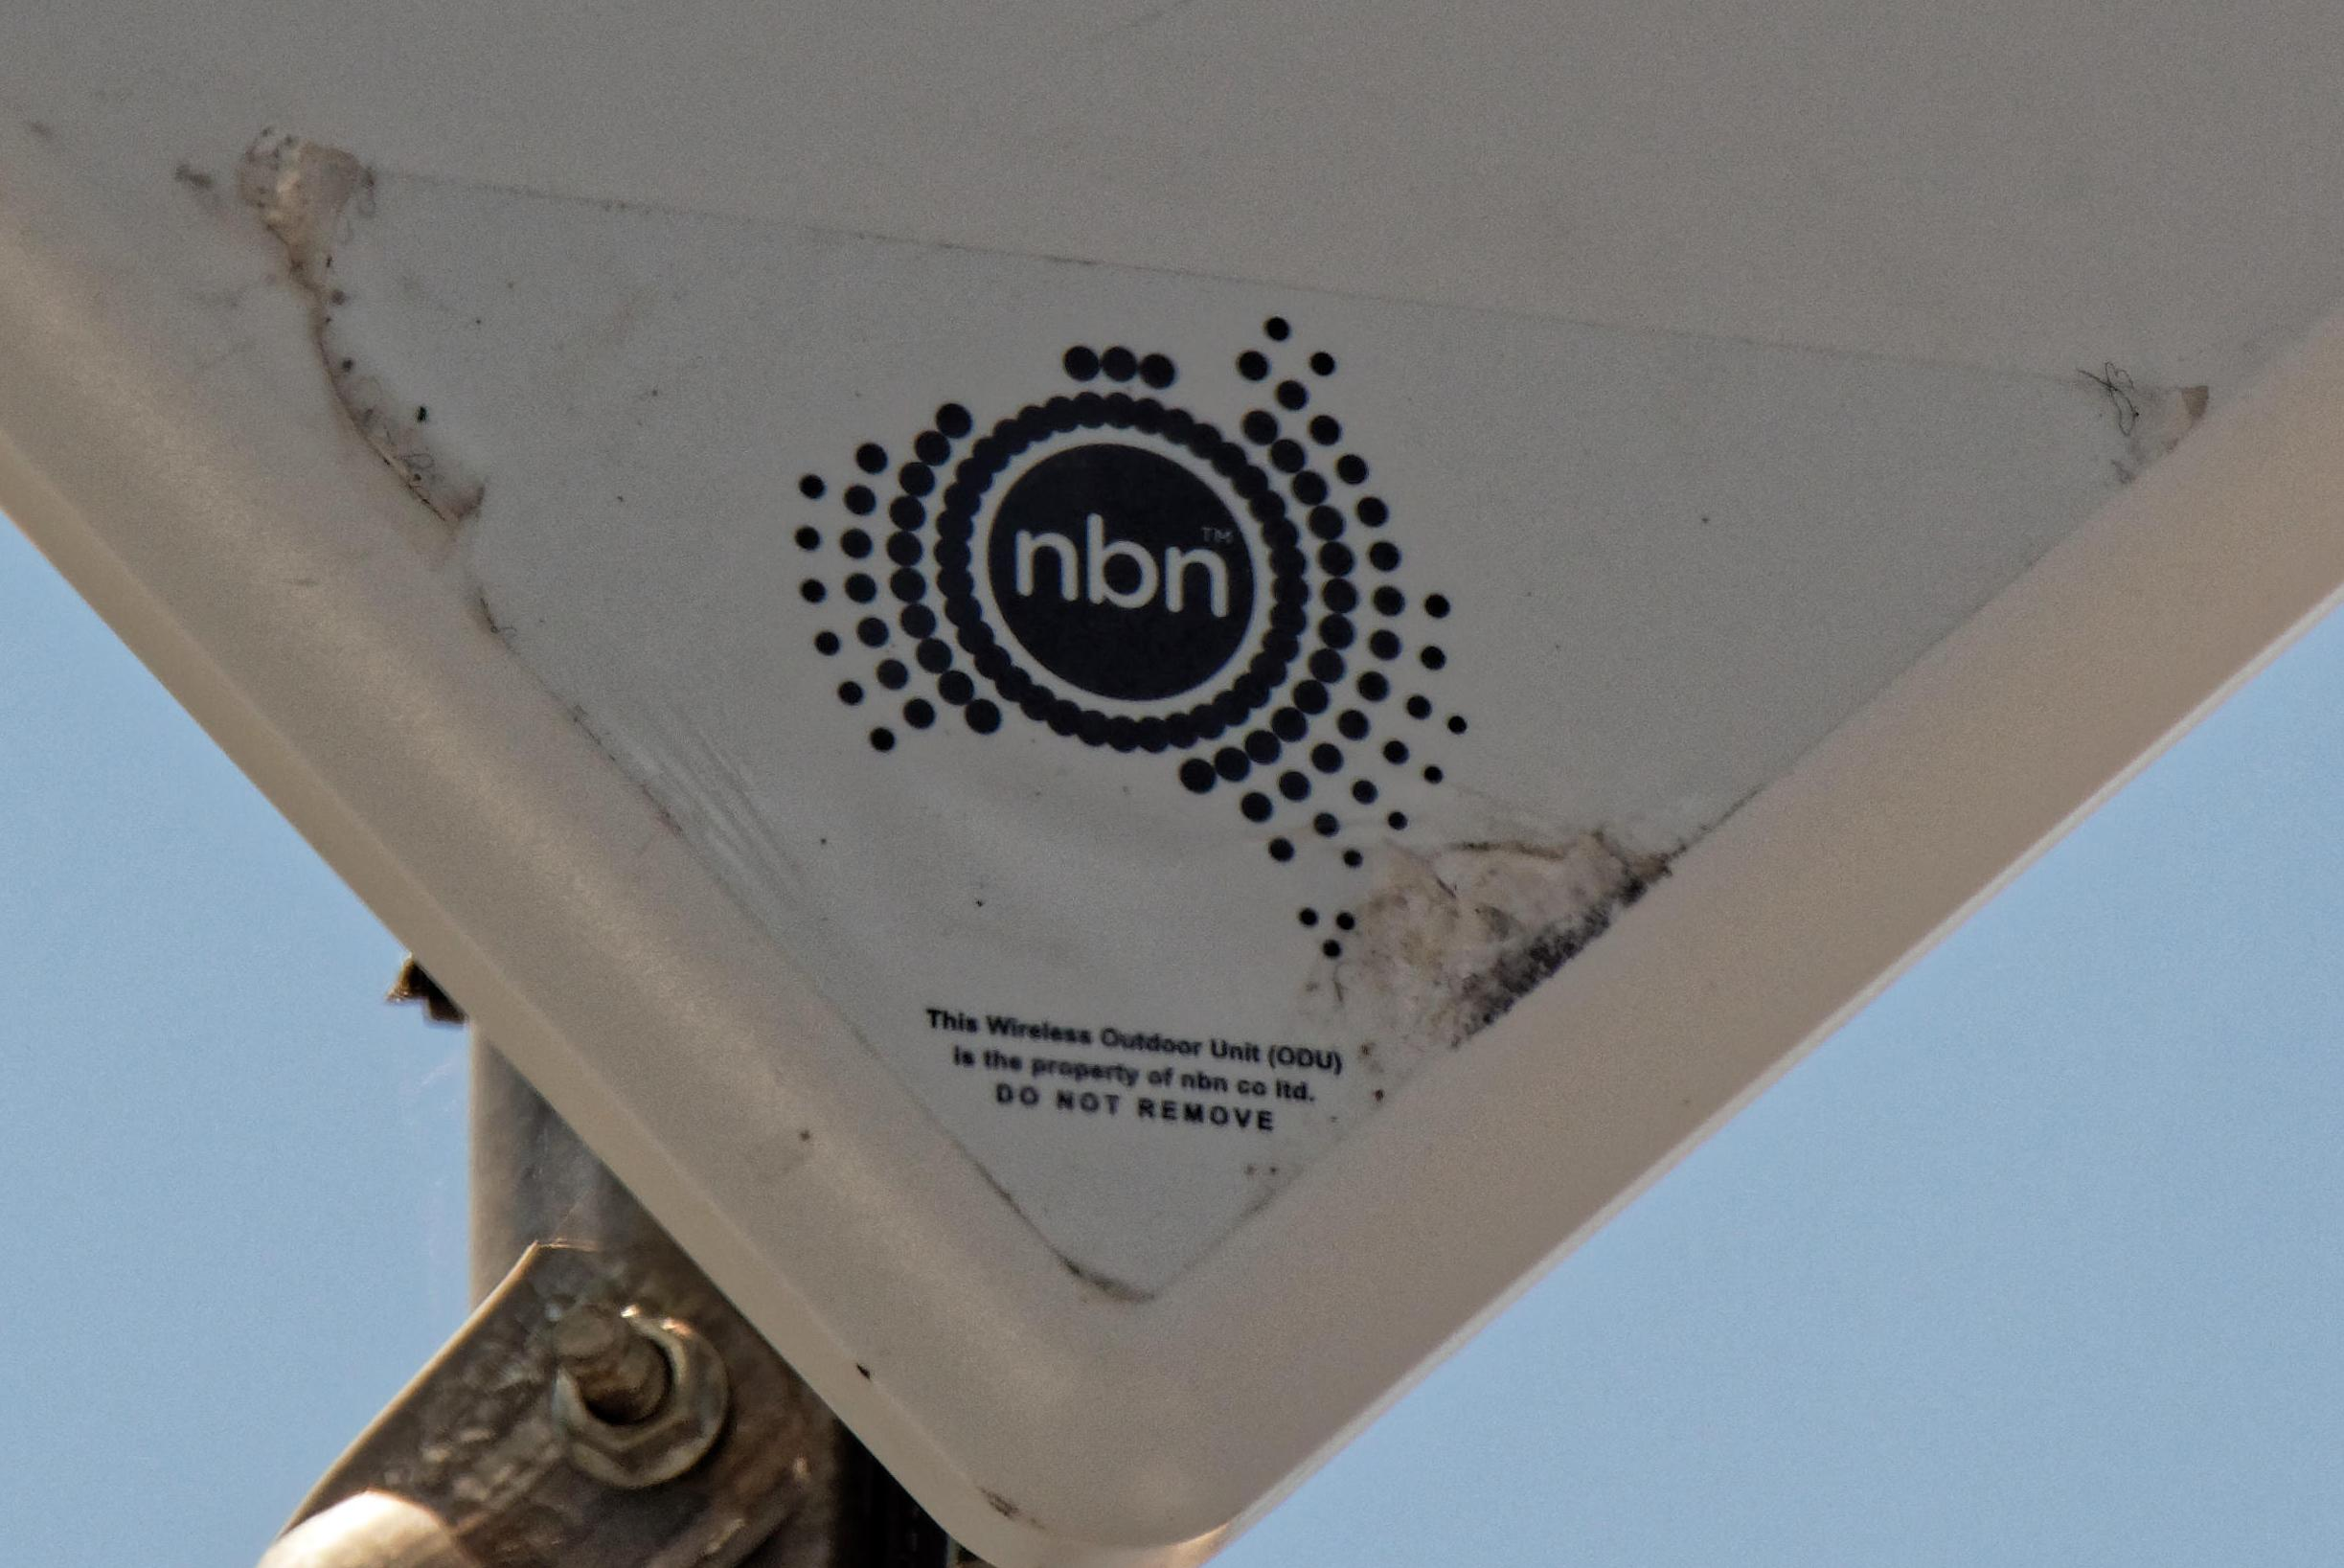 This should be NBN-ODU-3-detail.jpeg.  Is it missing?